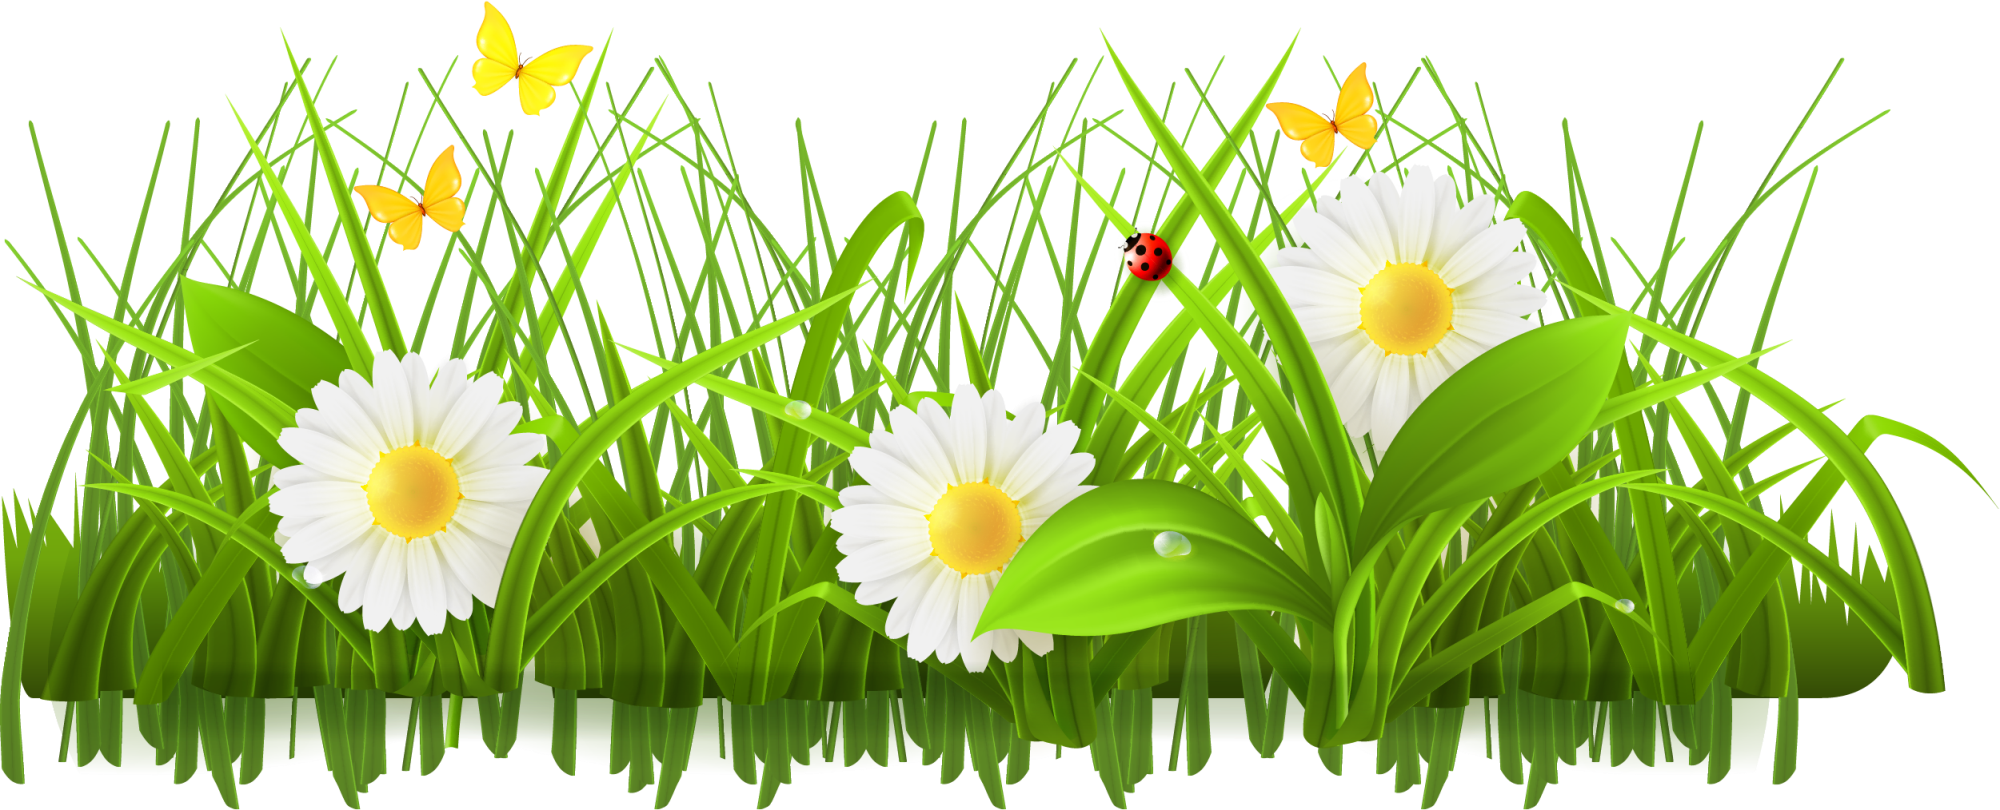 Spring stock photography clip. Flower meadow clipart